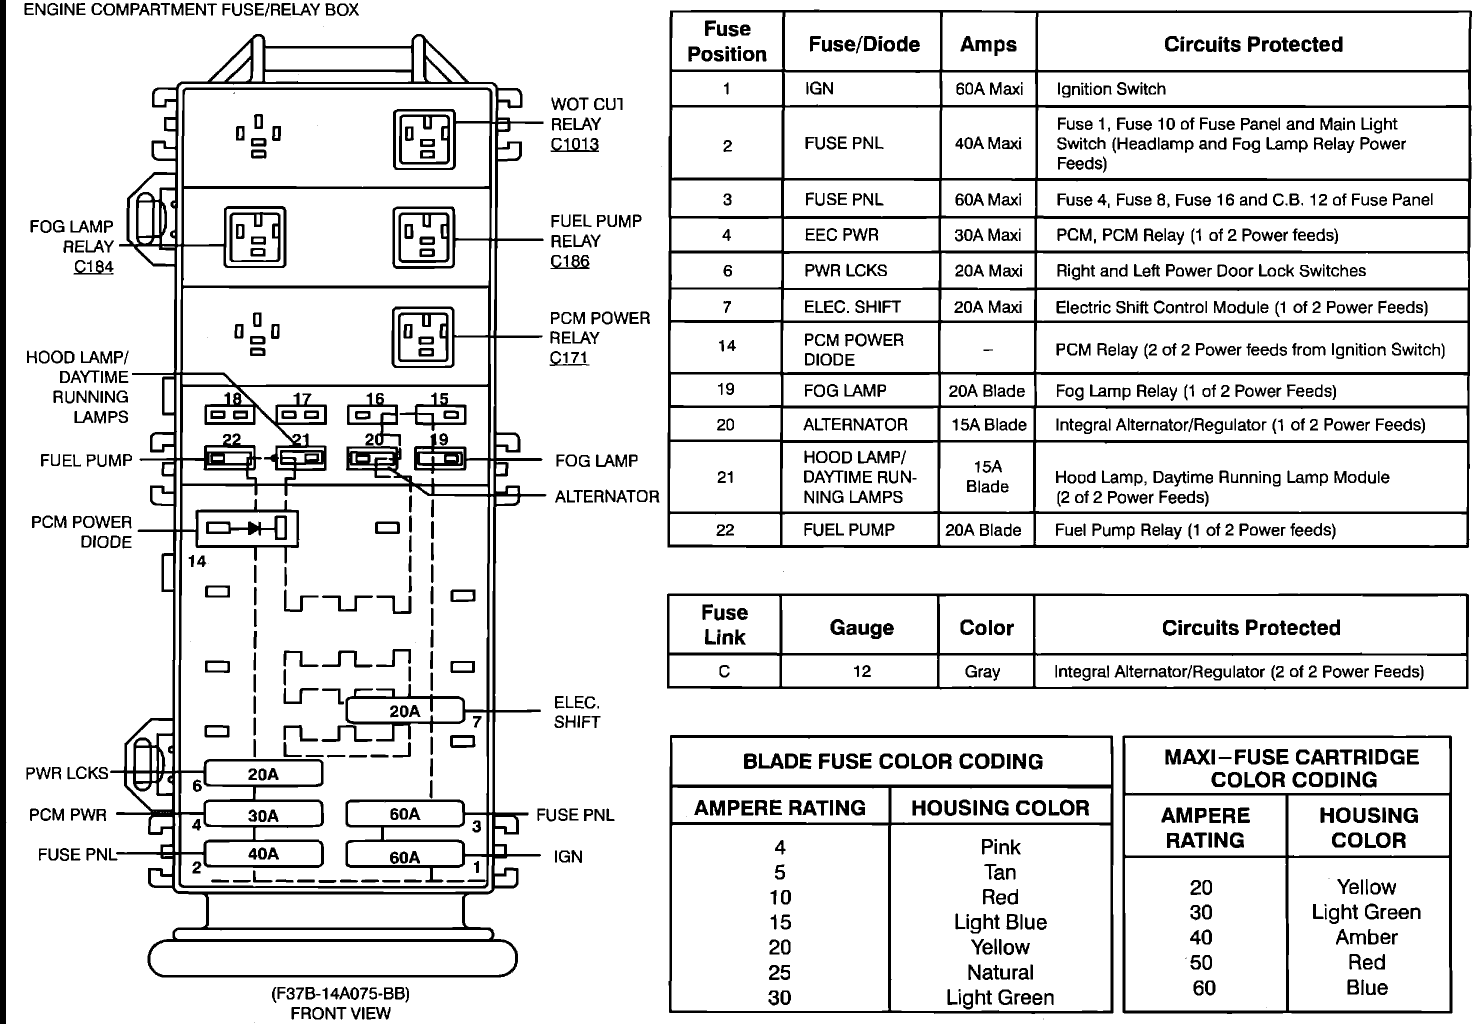 2004 Ranger Fuse Box Wiring Diagram Essig 04 Ford Mustang 93 Data 2003